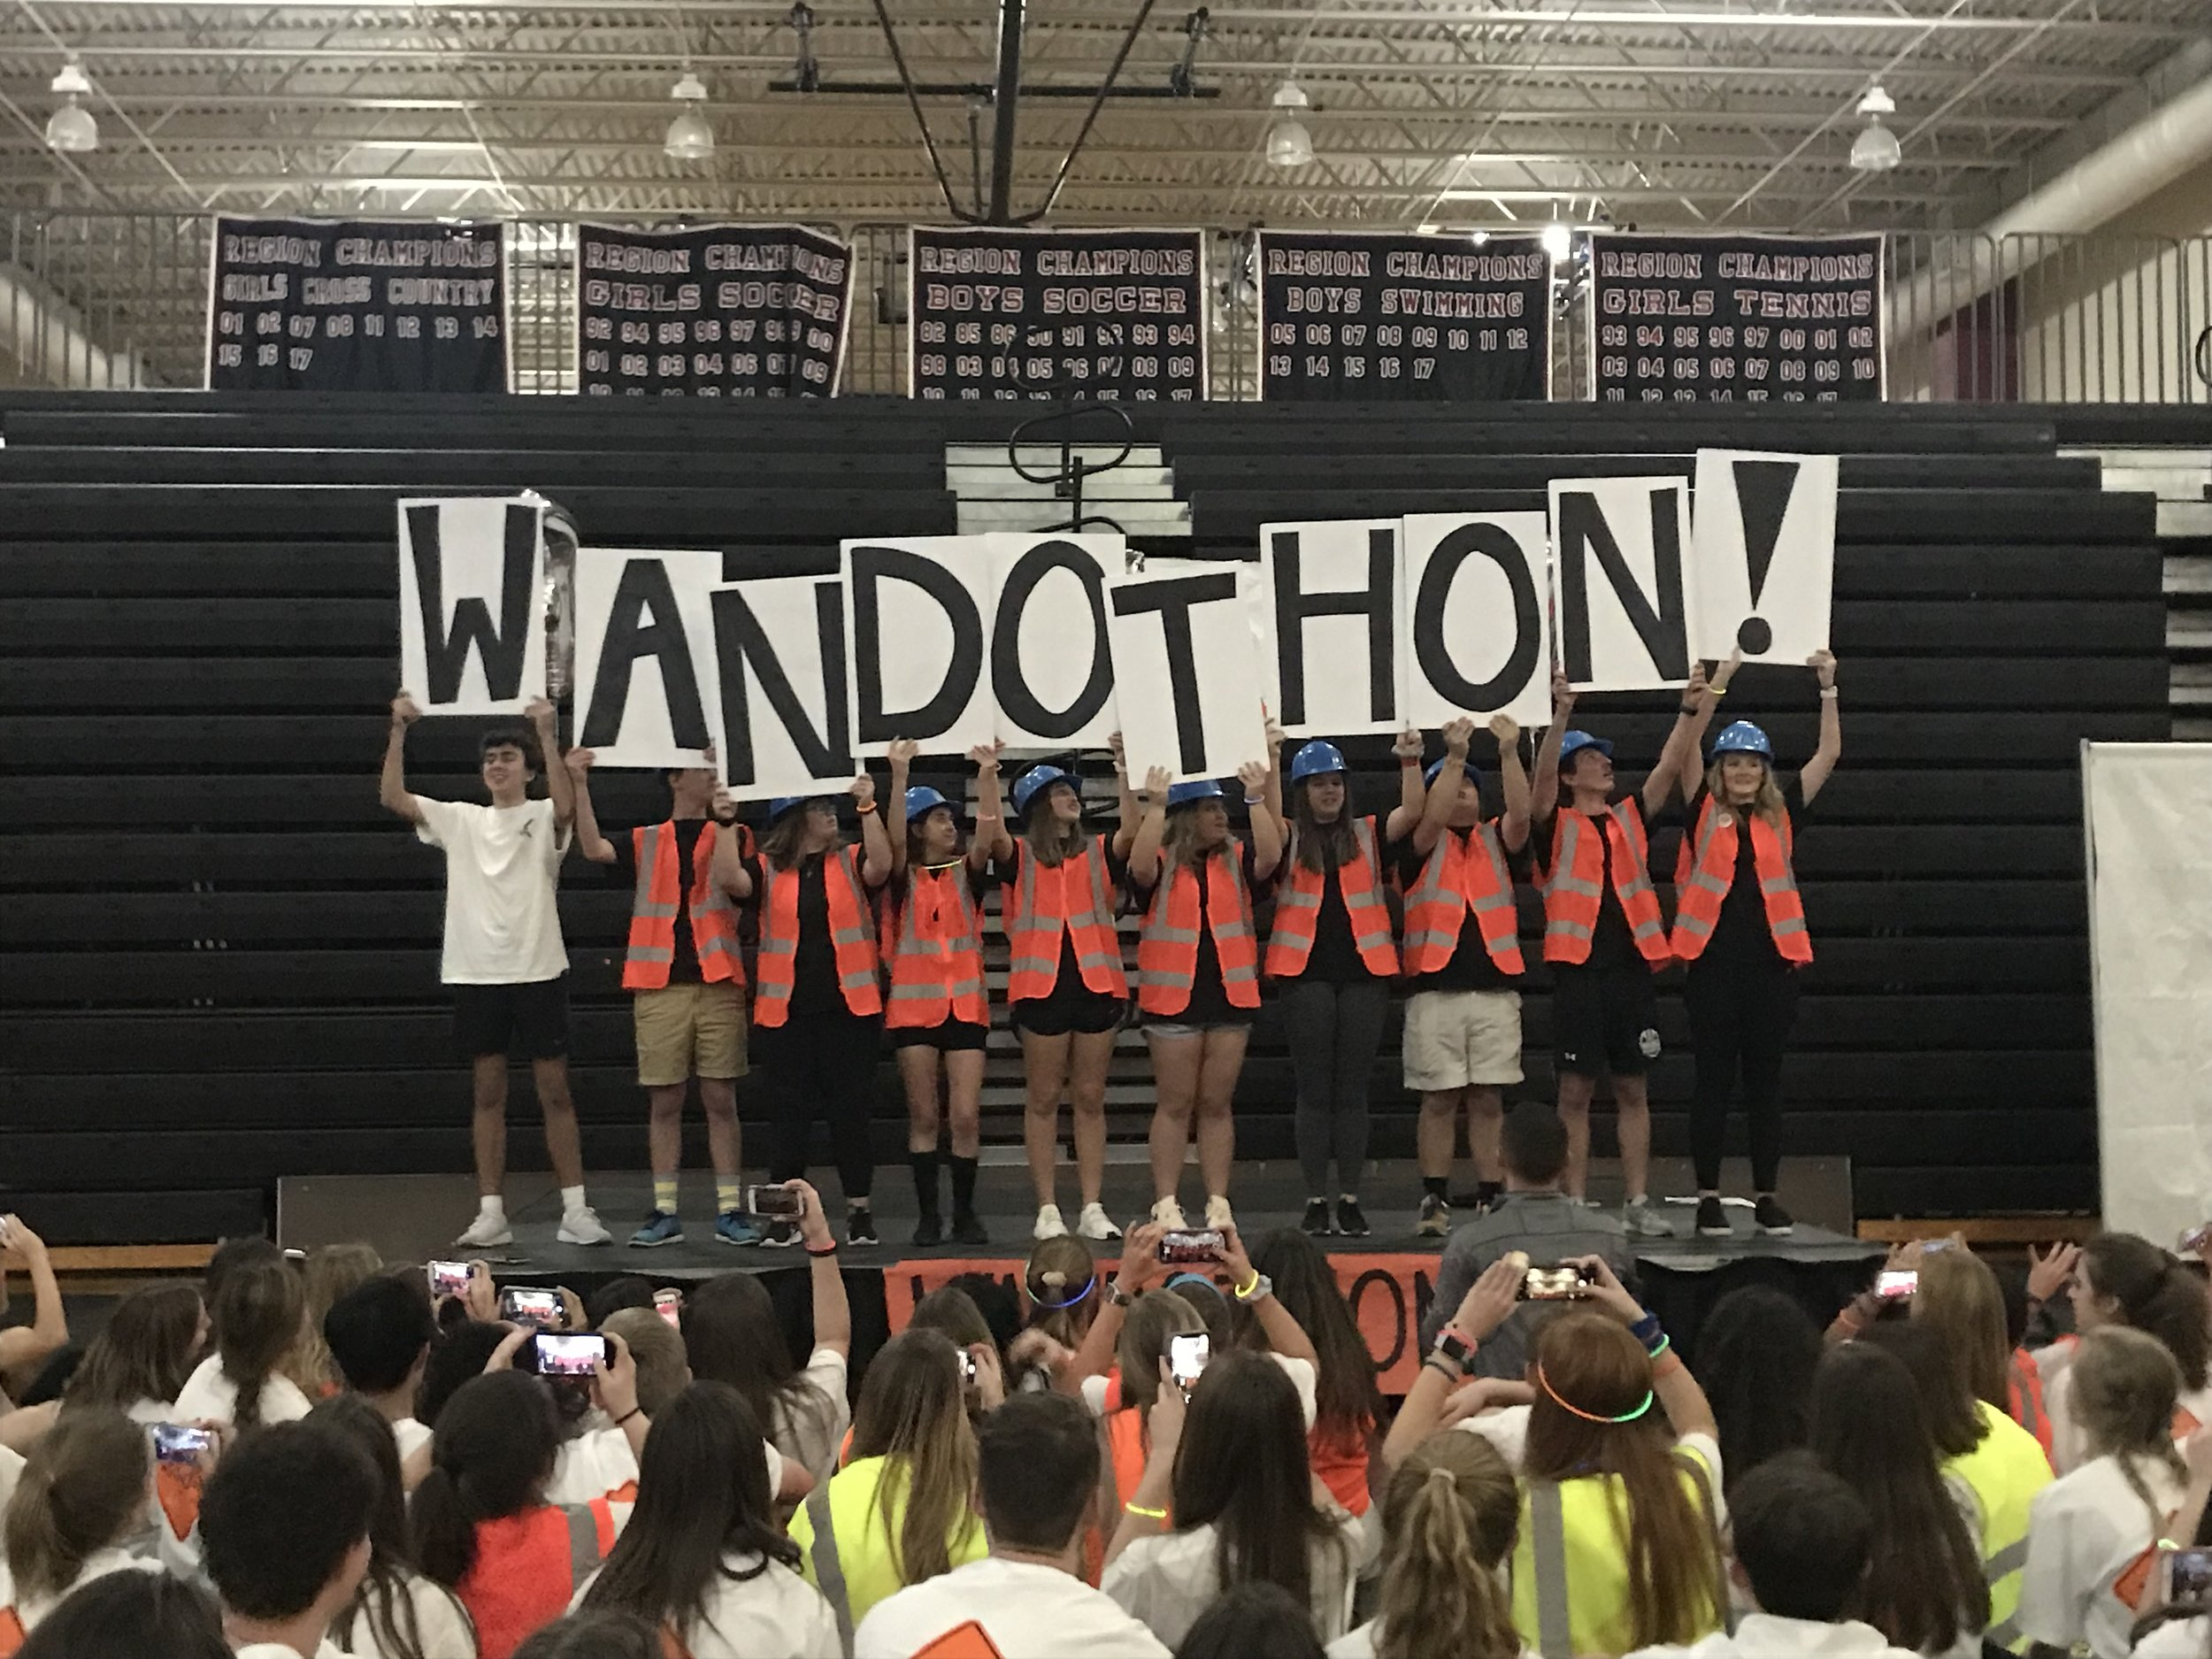 WANDOTHON - Wando High School hosted their second annual Wandothon on February 2, 2019. We are so proud of all of their efforts to fundraise for the kids at MUSC Children's Hospital!